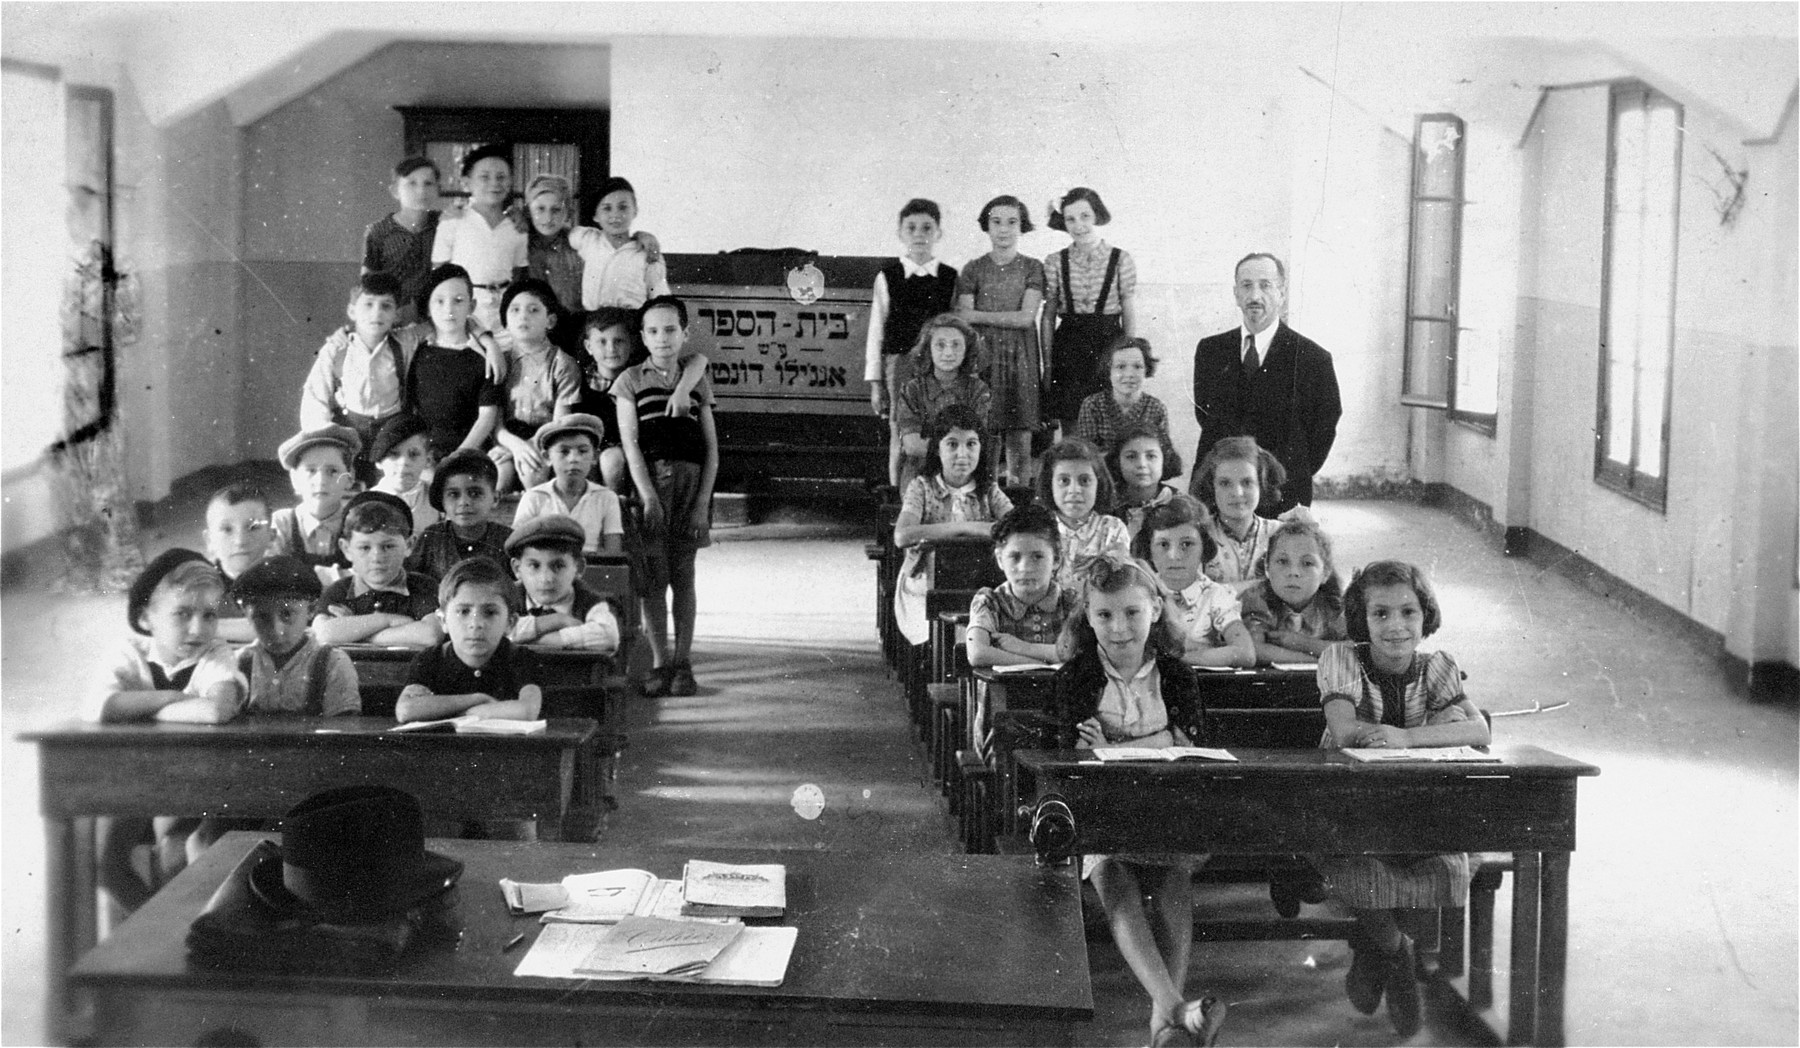 Pupils of the Angelo Donatti school in Italian-occupied Saint-Martin-Vesubie near Nice.